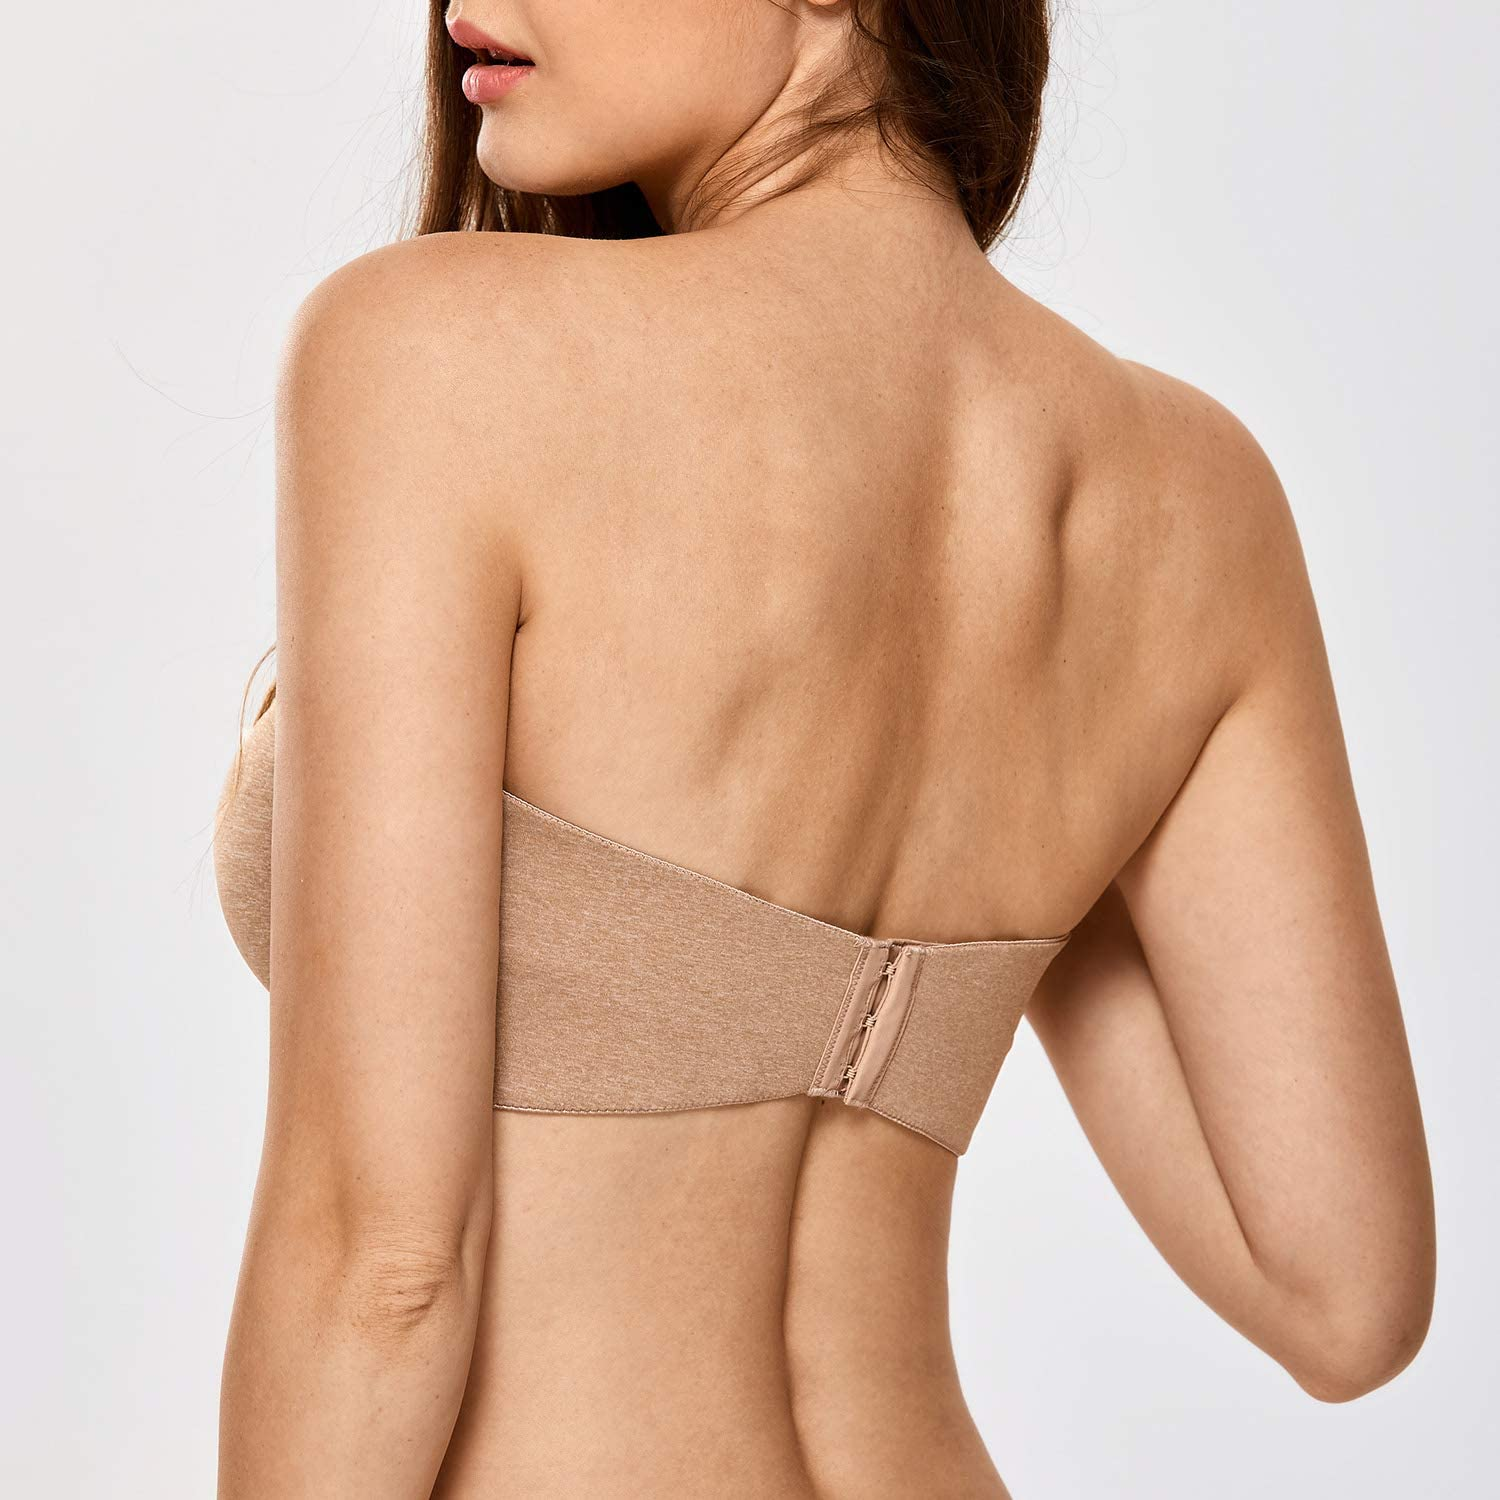 DELIMIRA Womens Non-Padded Underwire Minimizer Support Strapless Bra for Large Bust